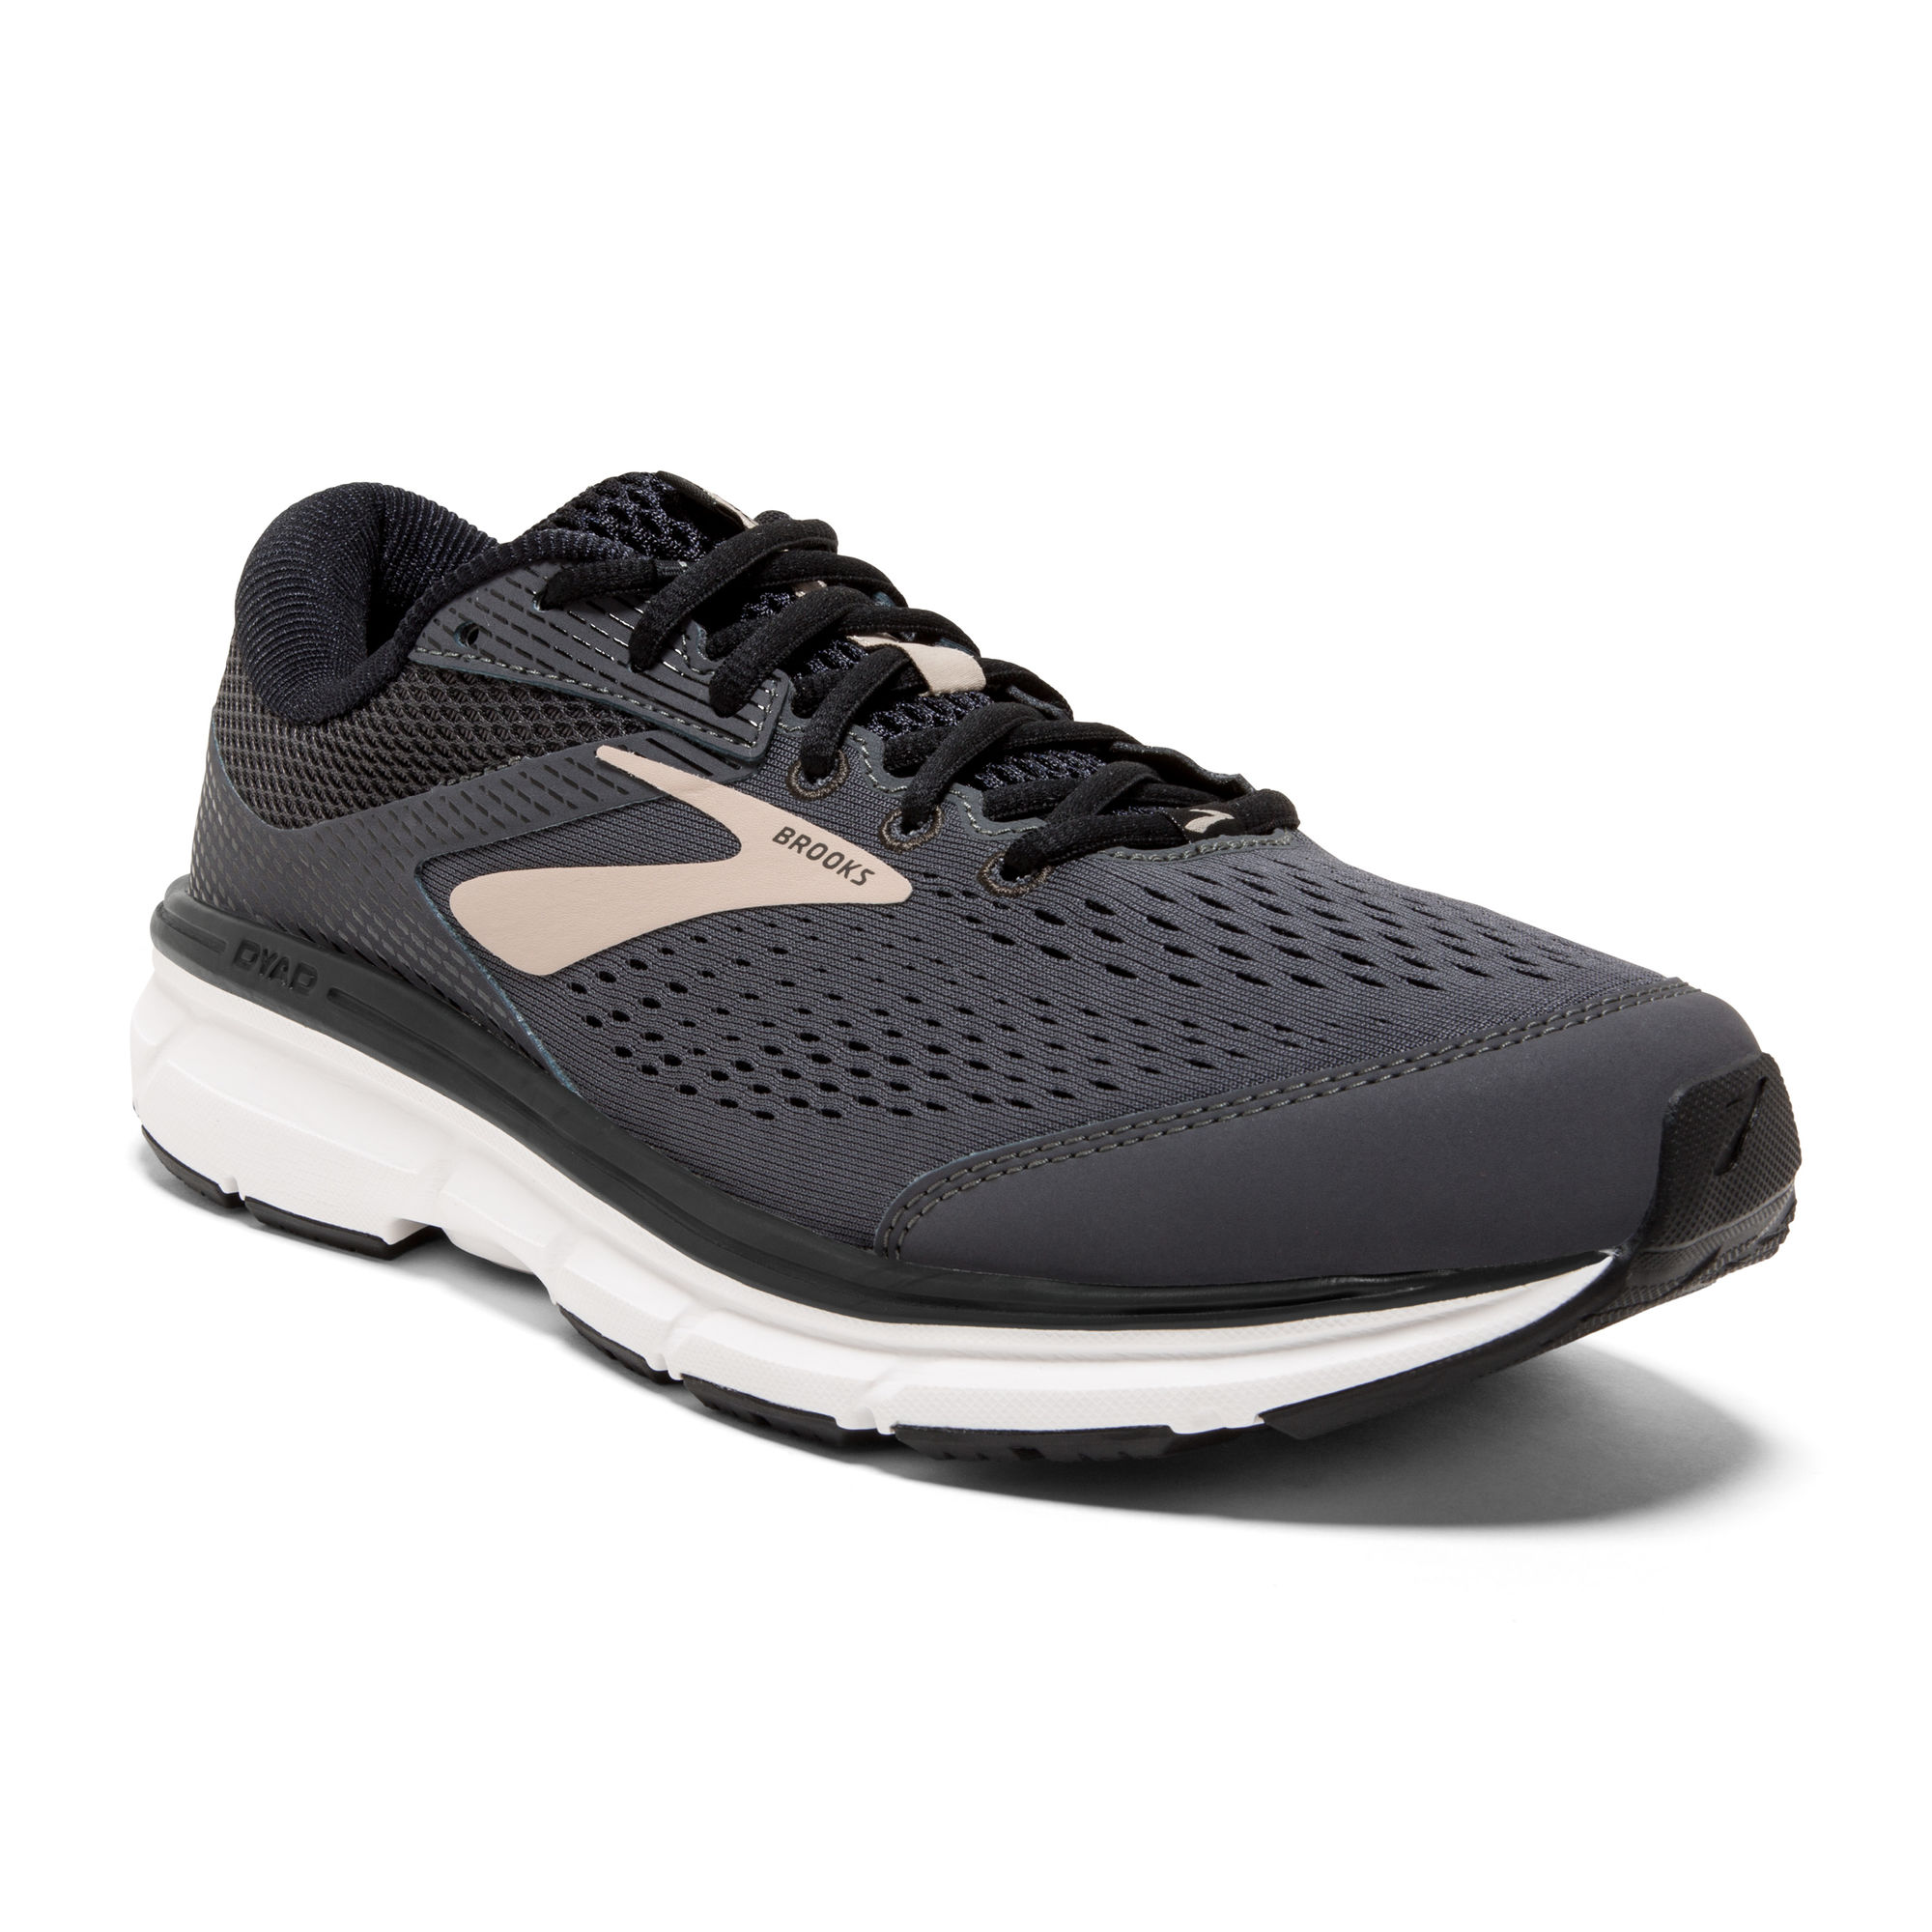 Brooks Dyad 10 4E in Grau